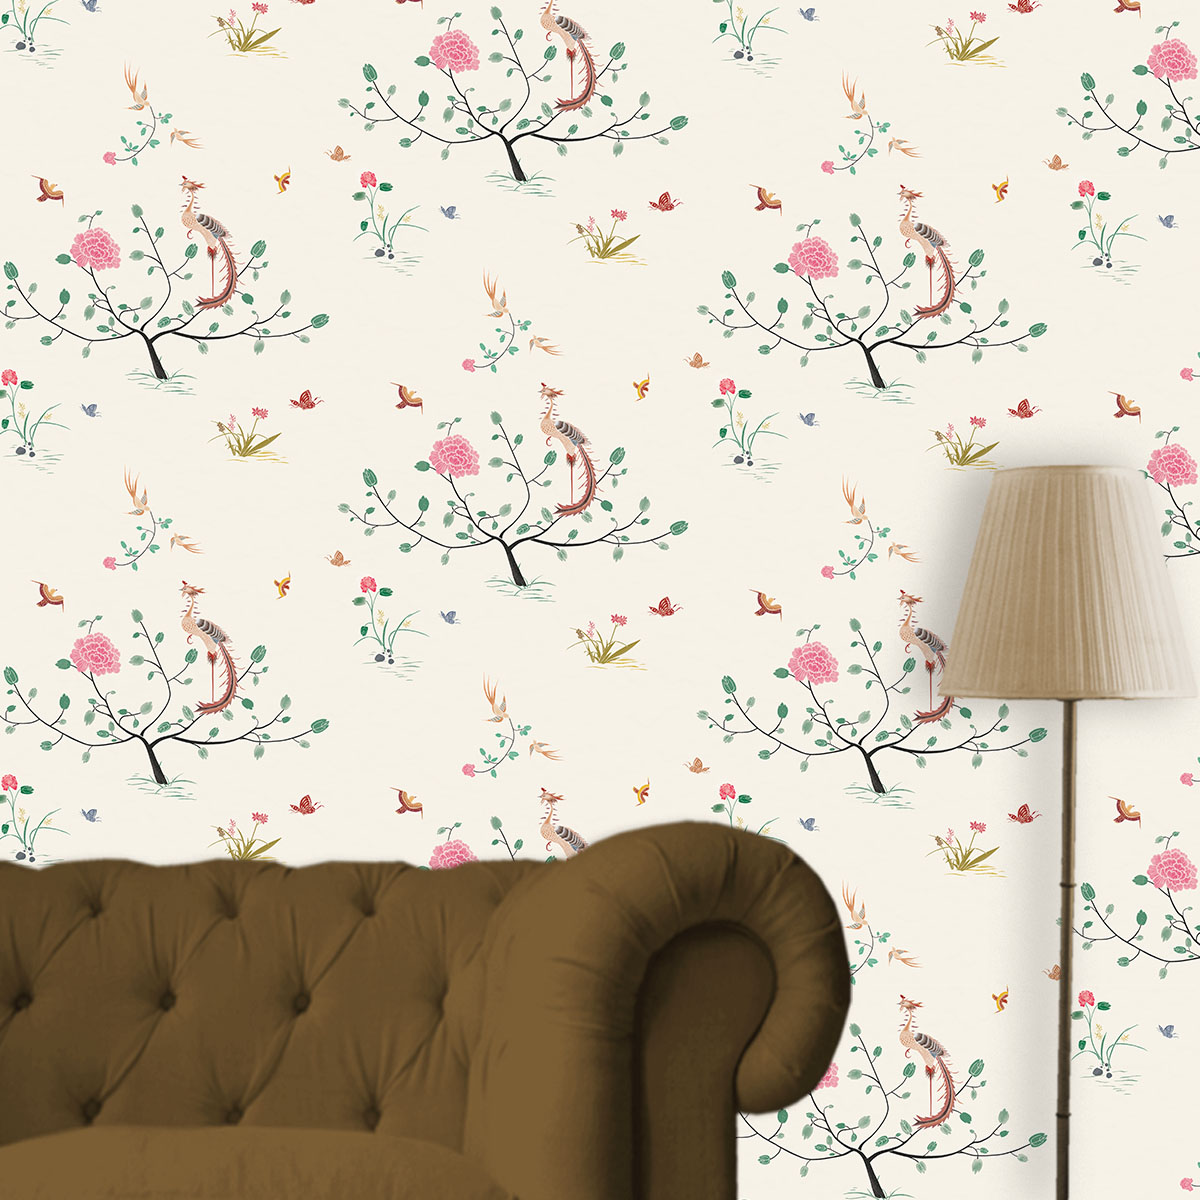 Peranakan design wallpaper